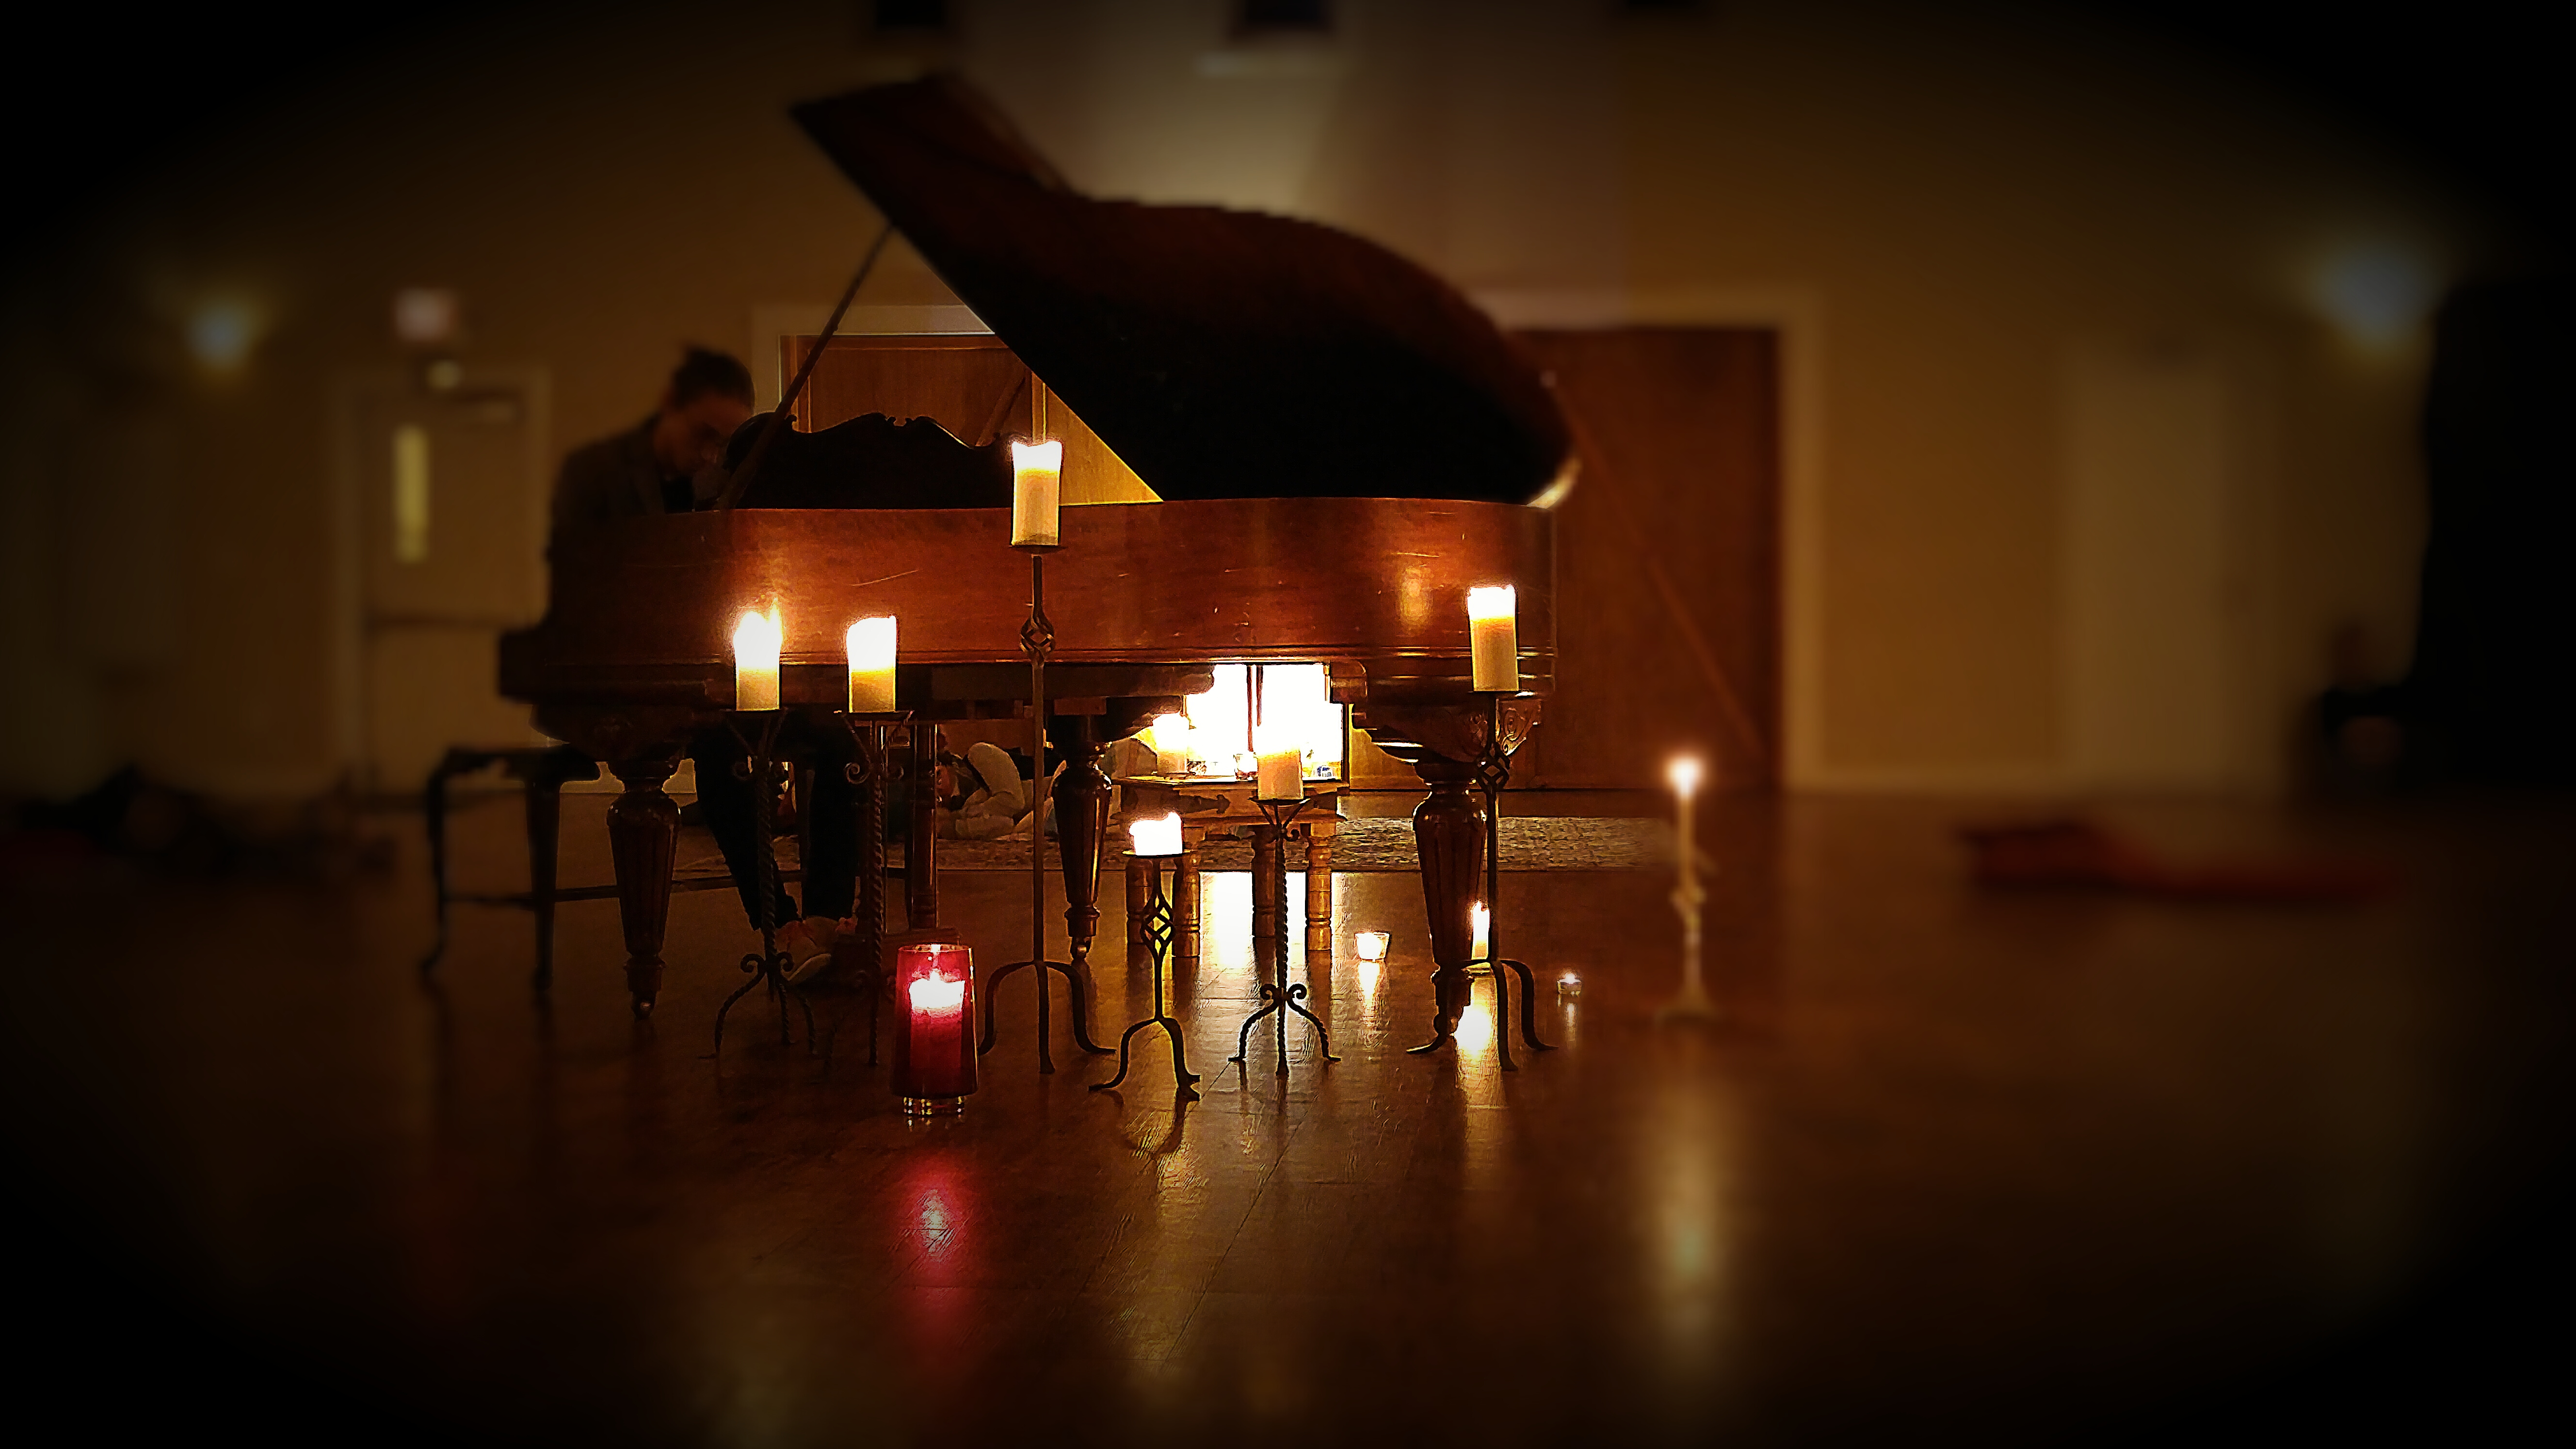 openspace piano candles IMG_20151108_202756